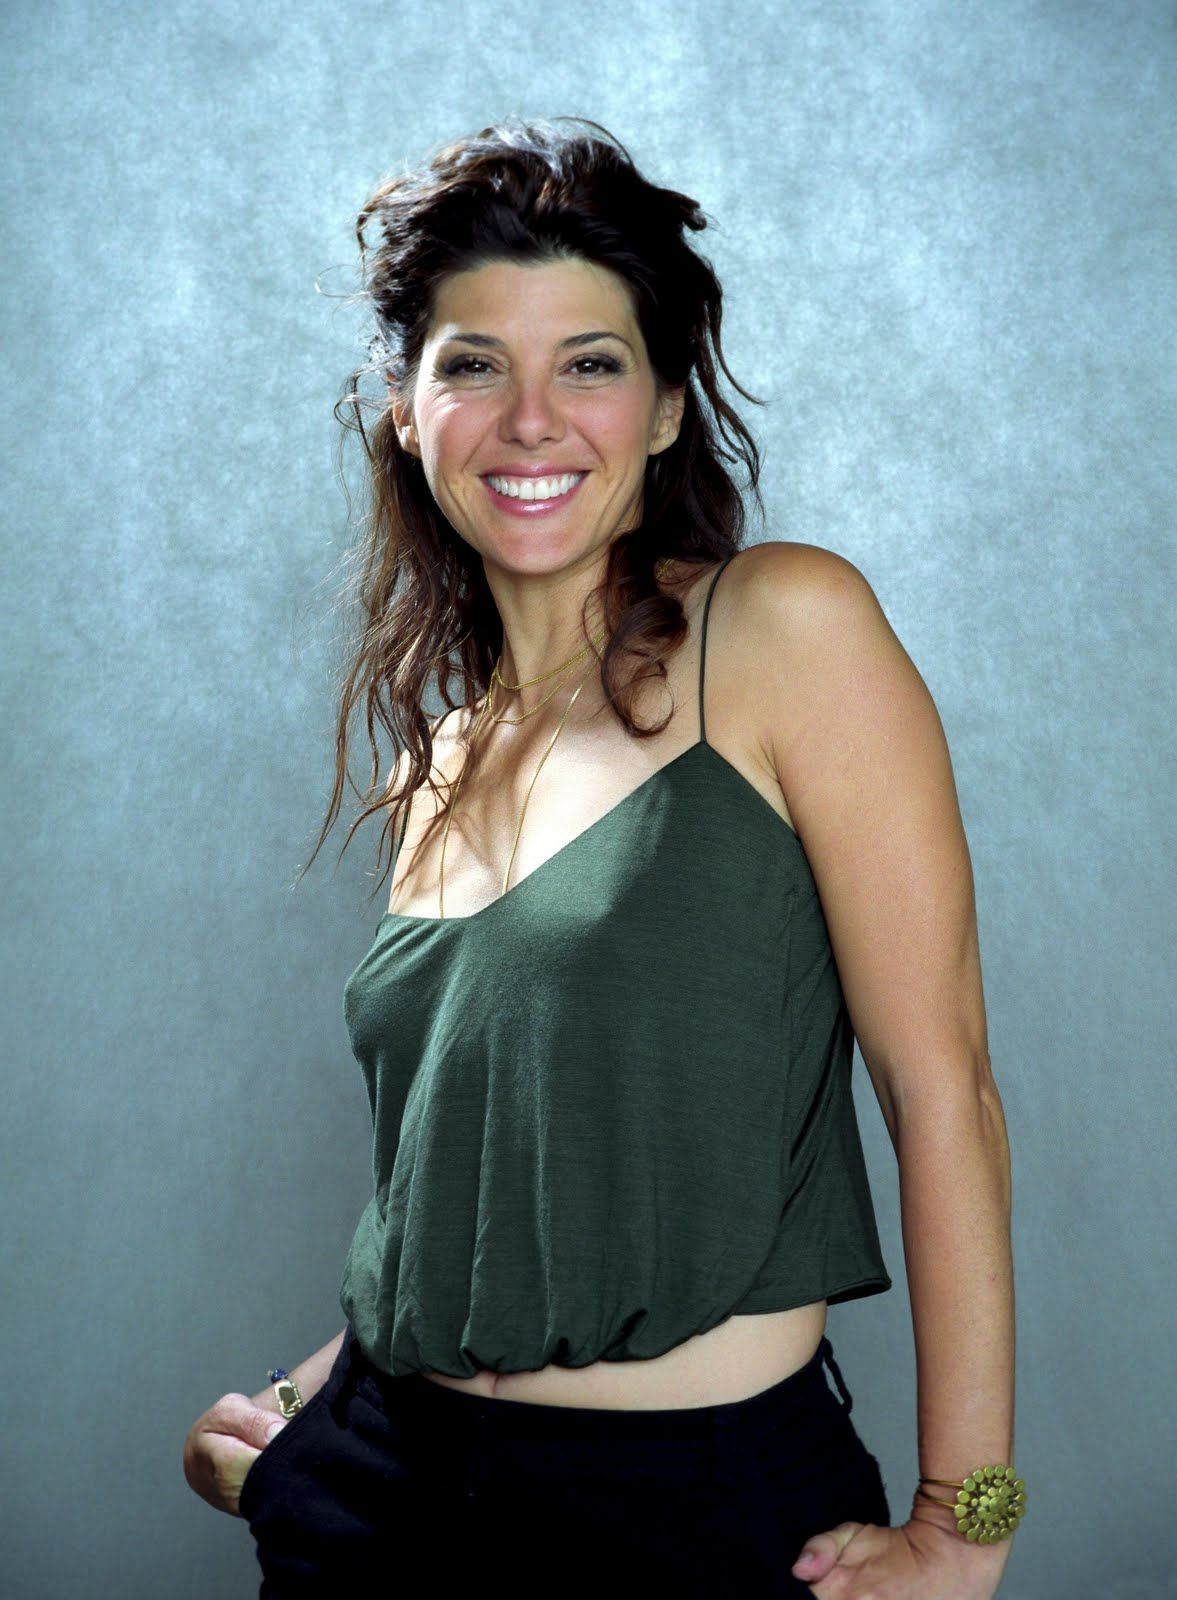 Famous Pretty Girls: Marisa Tomei Pokies Braless Nipples